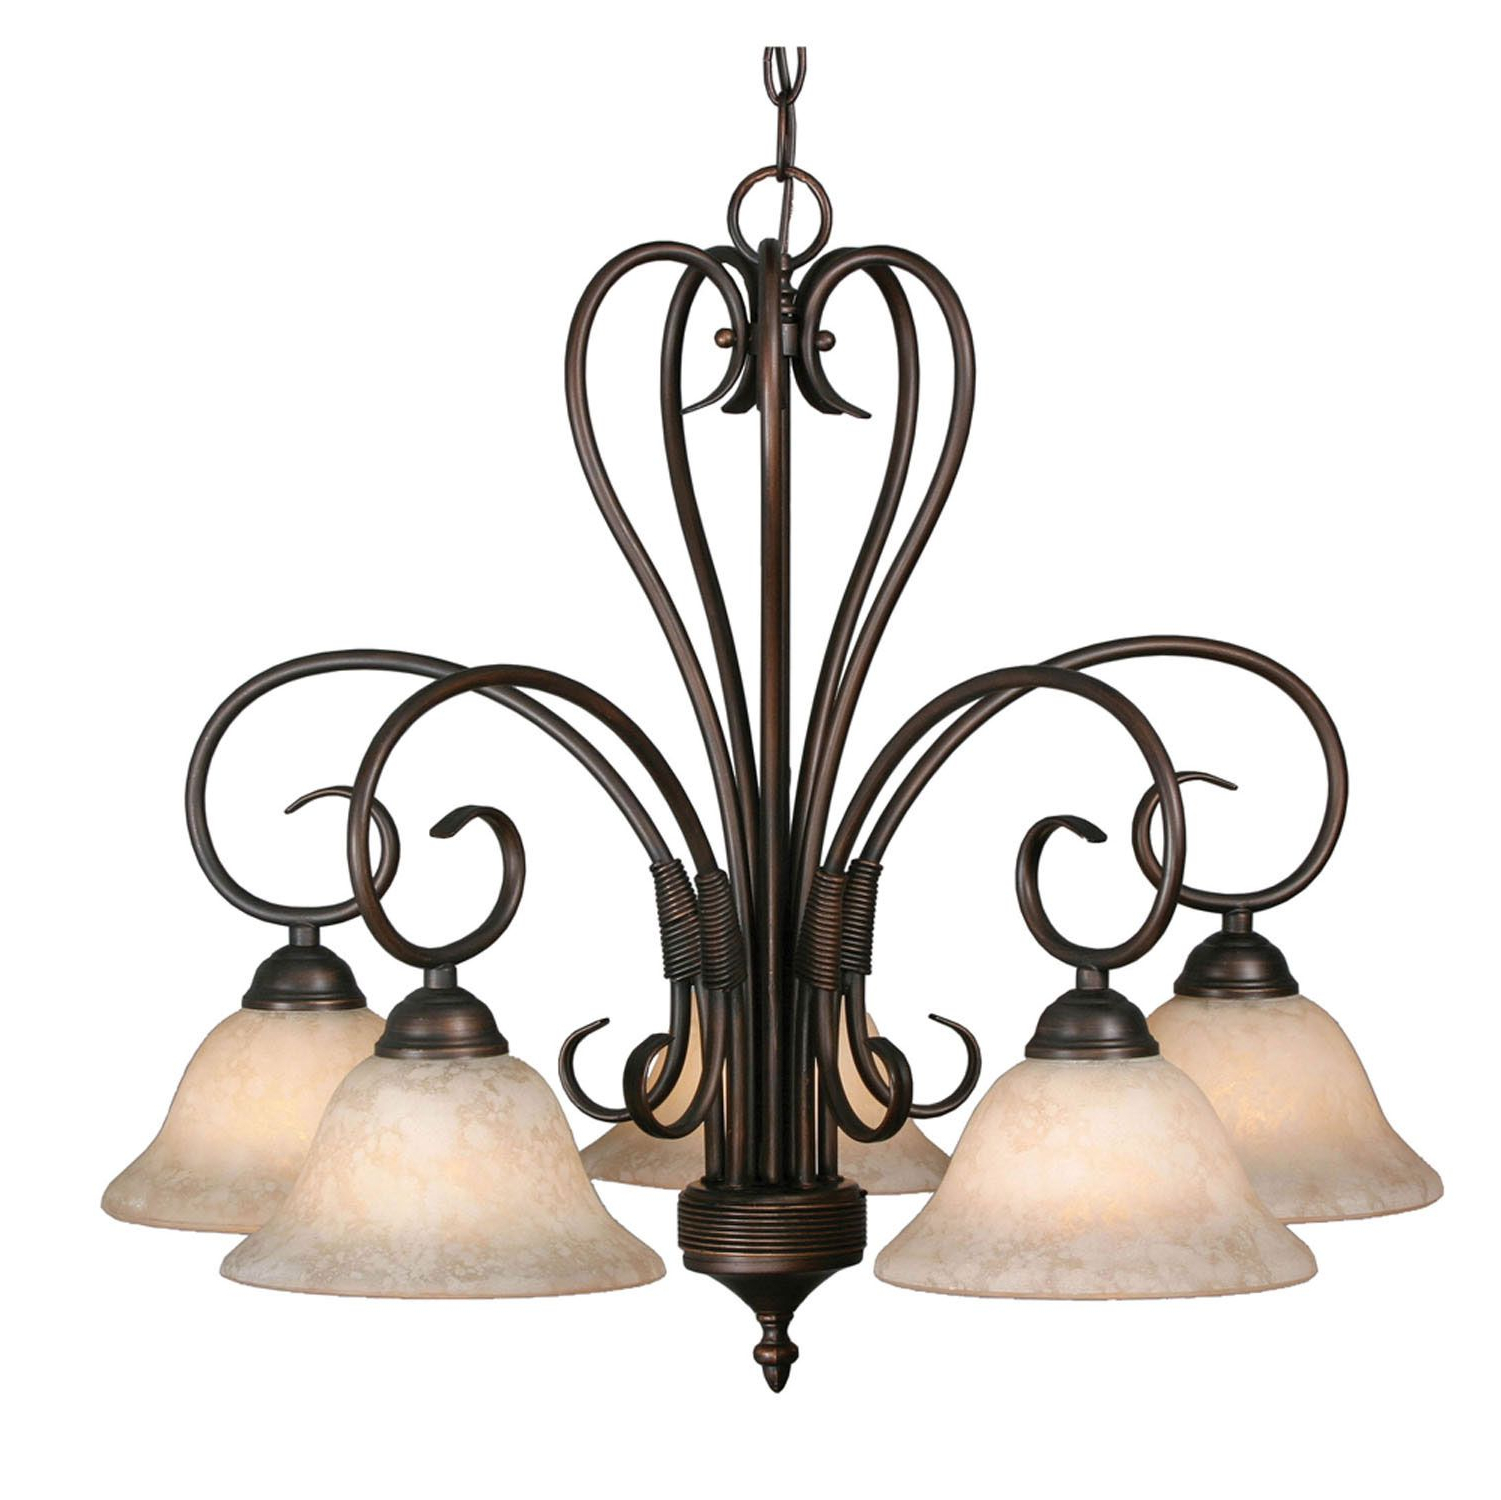 Household Needs Intended For Gaines 5 Light Shaded Chandeliers (View 18 of 20)